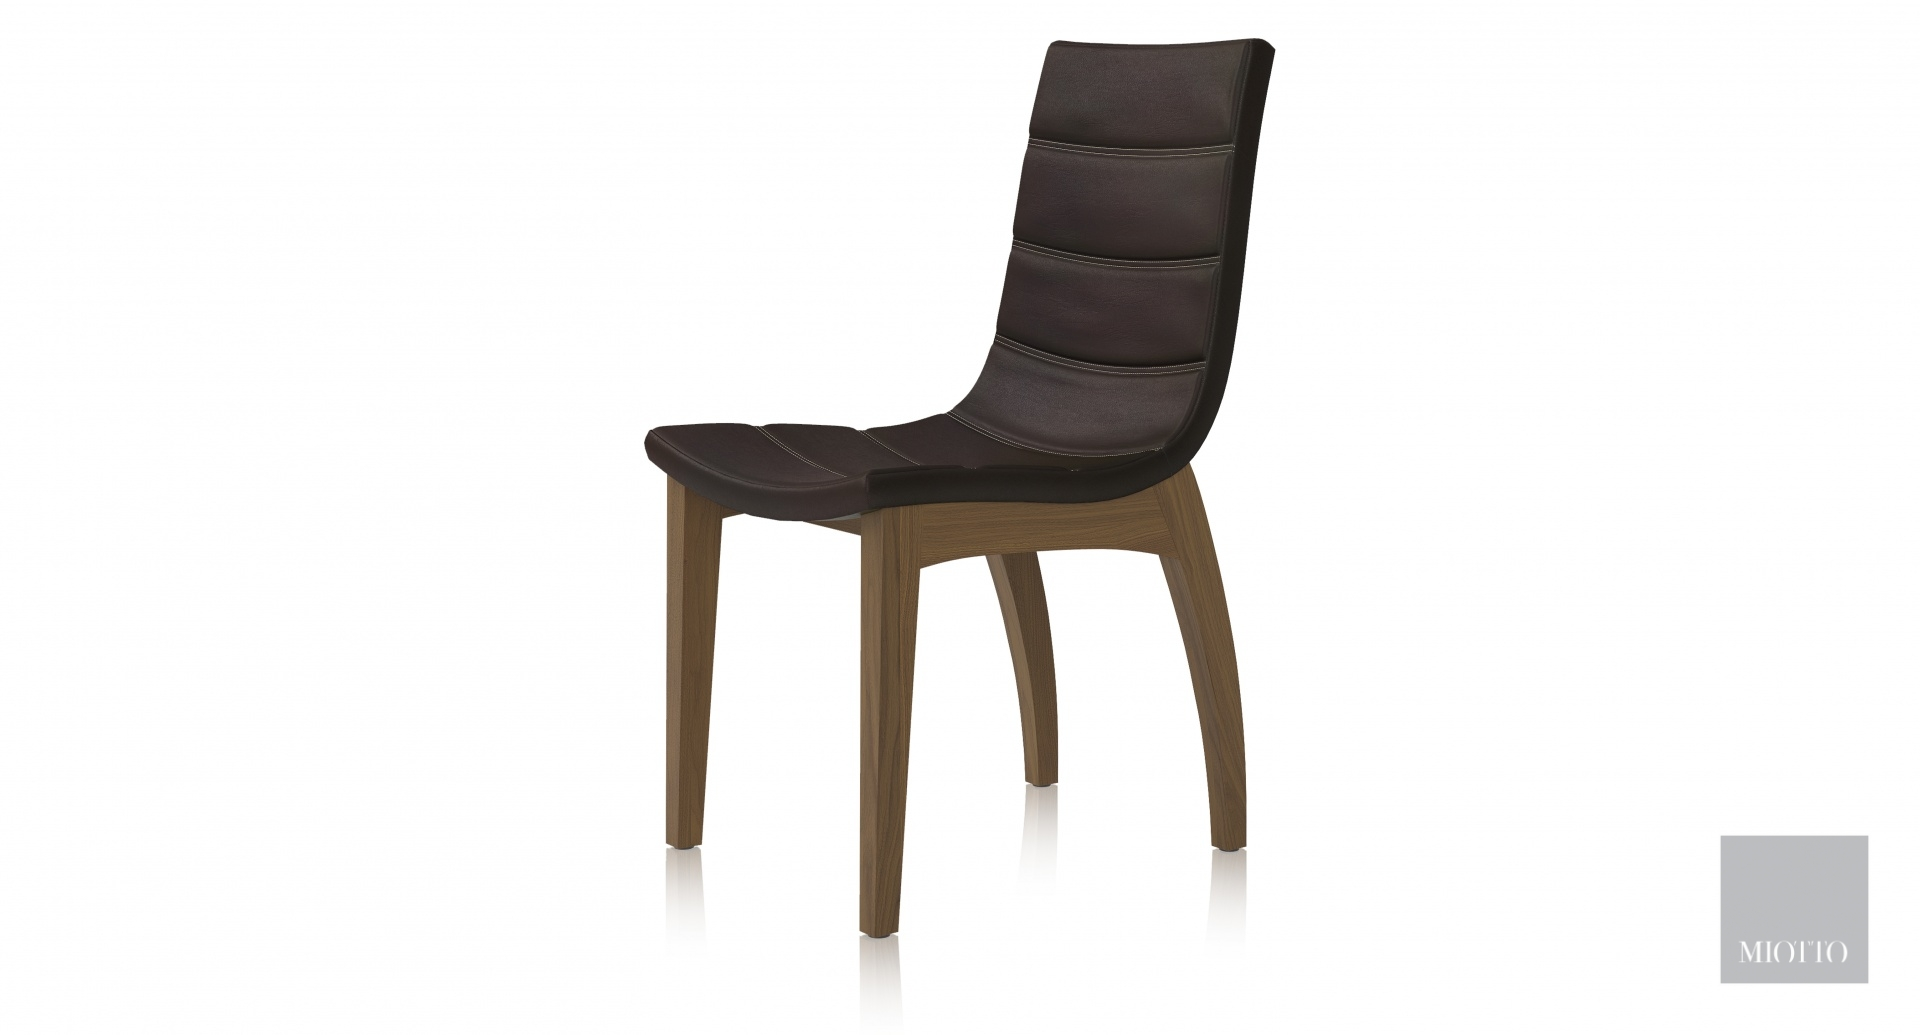 miotto_epiro DC brown T miotto dining chair furniture